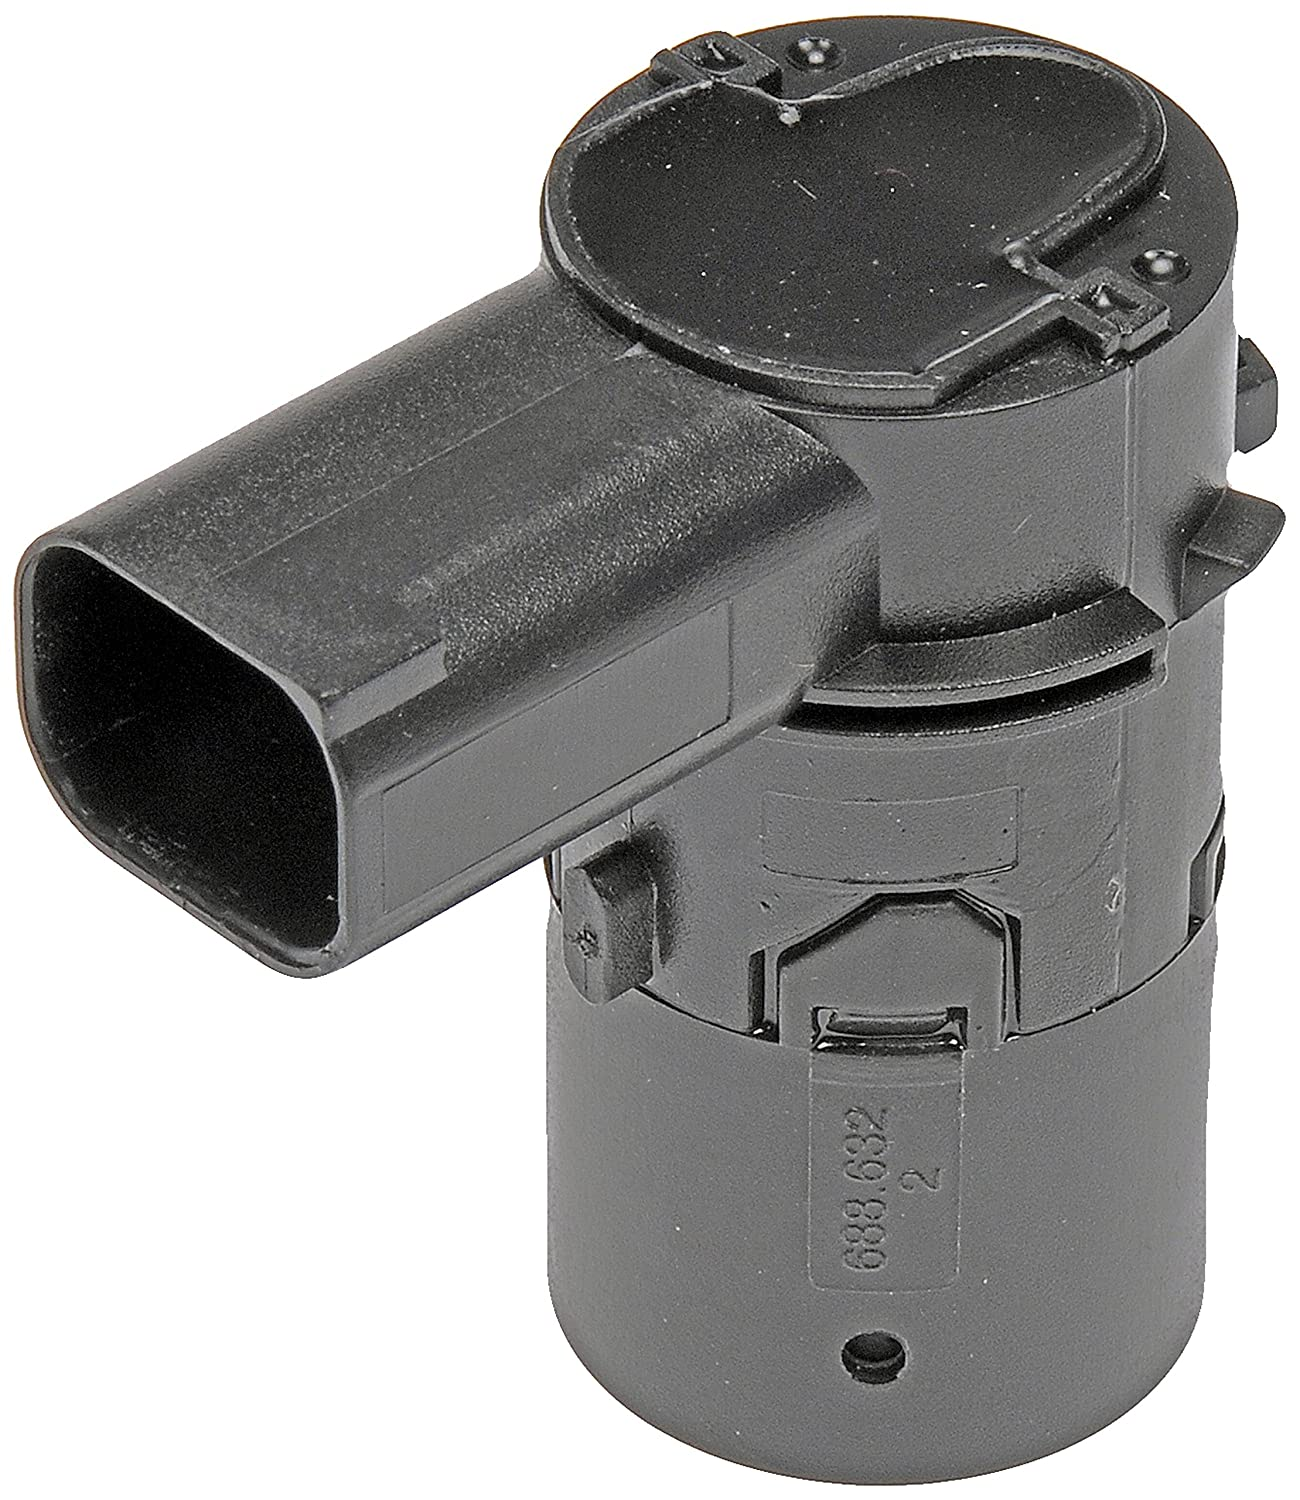 Dorman 684-029 Parking Assist Sensor